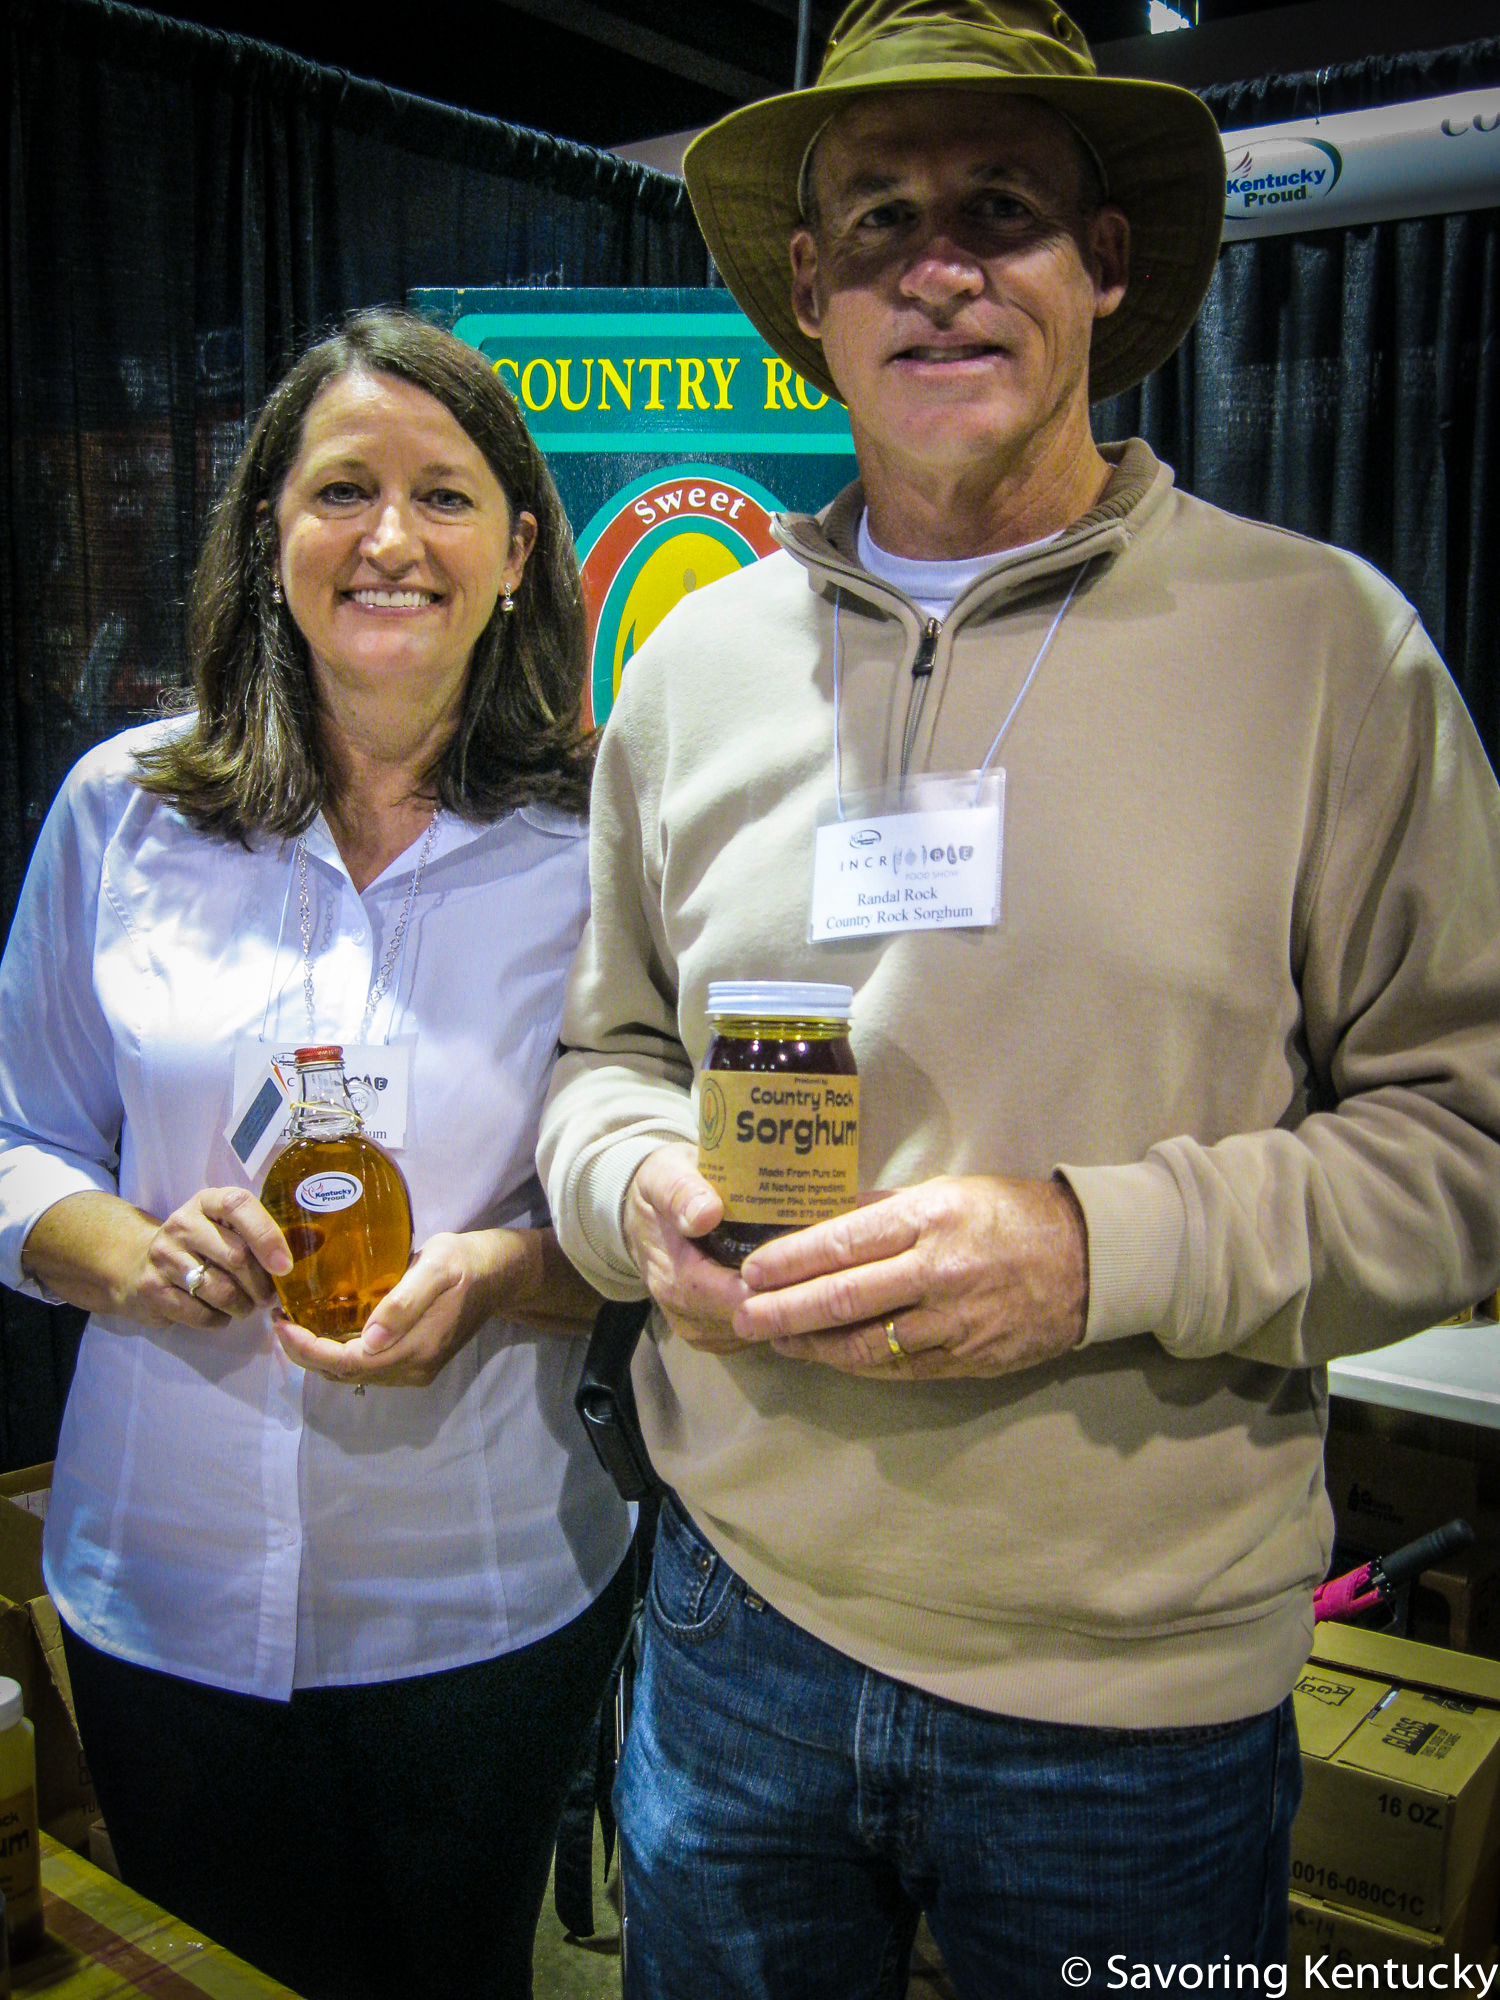 Jill Rock and Randal Rock, part of the Country Rock Sorghum enterprise. Jill holds maple syrup and Randal holds sorghum, both vintage 2014.